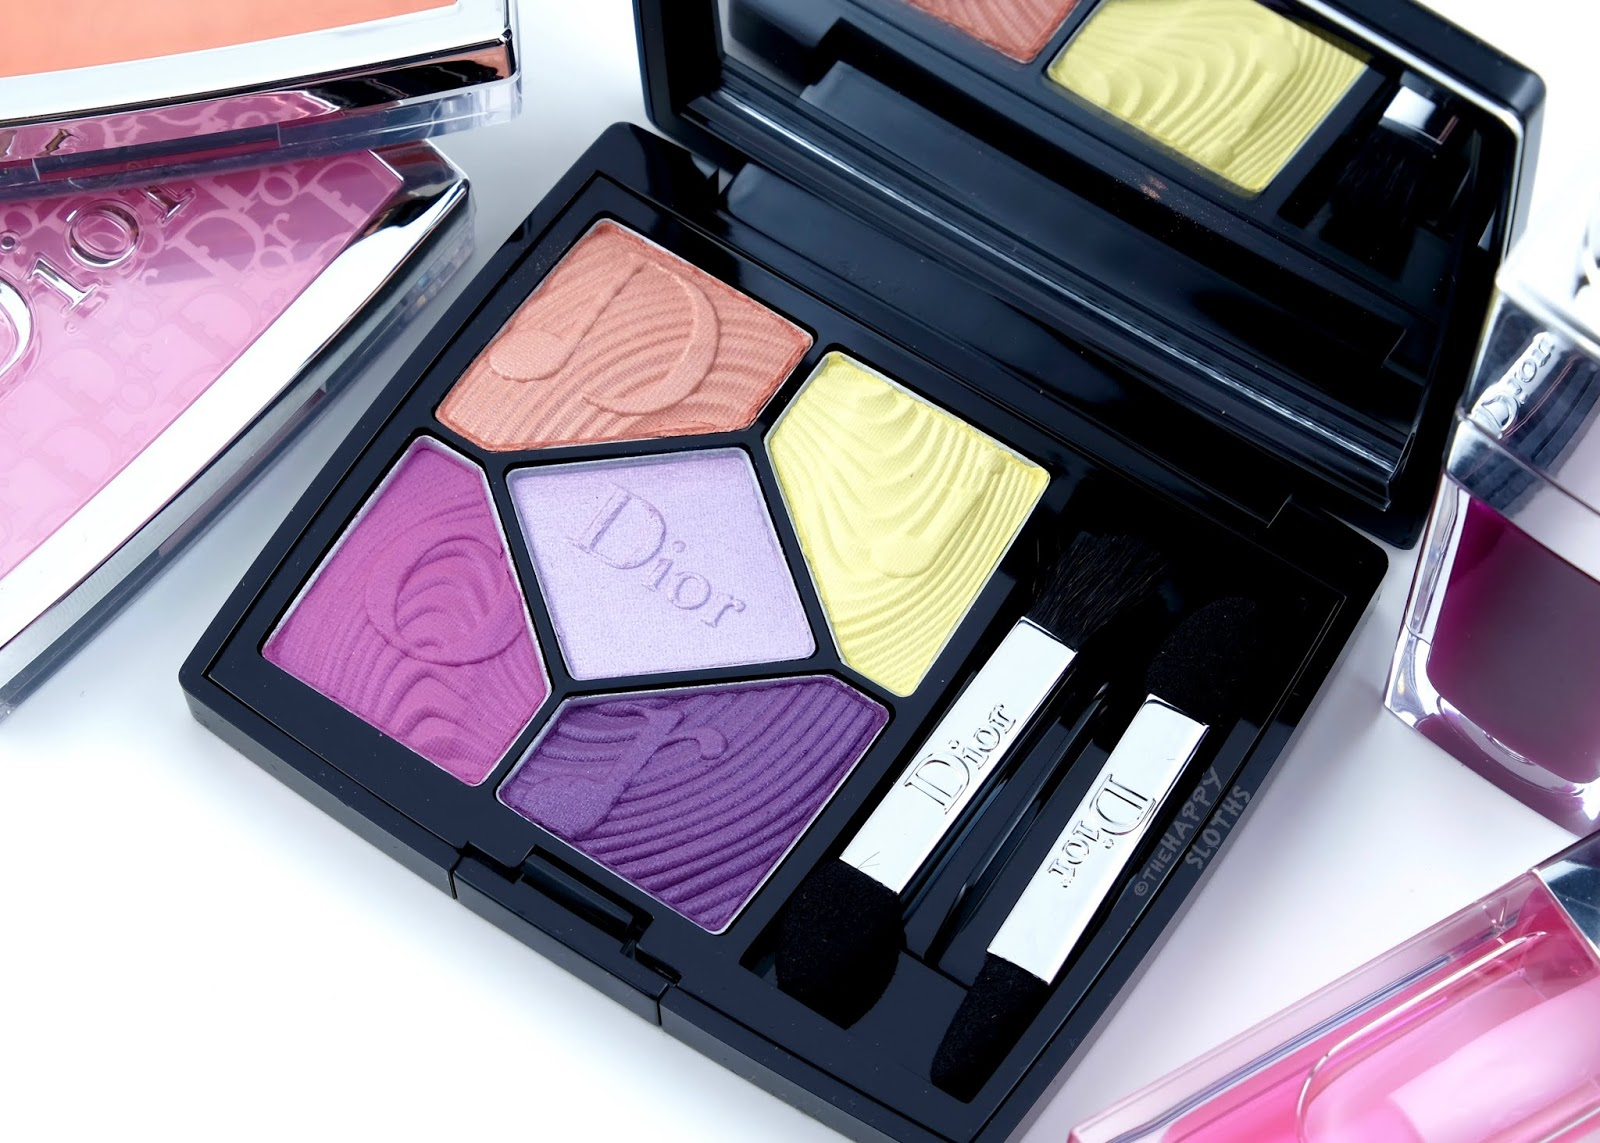 "Dior | Spring 2020 Glow Vibes Collection | 5 Couleurs Glow Vibes Eyeshadow Palette in ""167 Pink Vibration"": Review and Swatches"